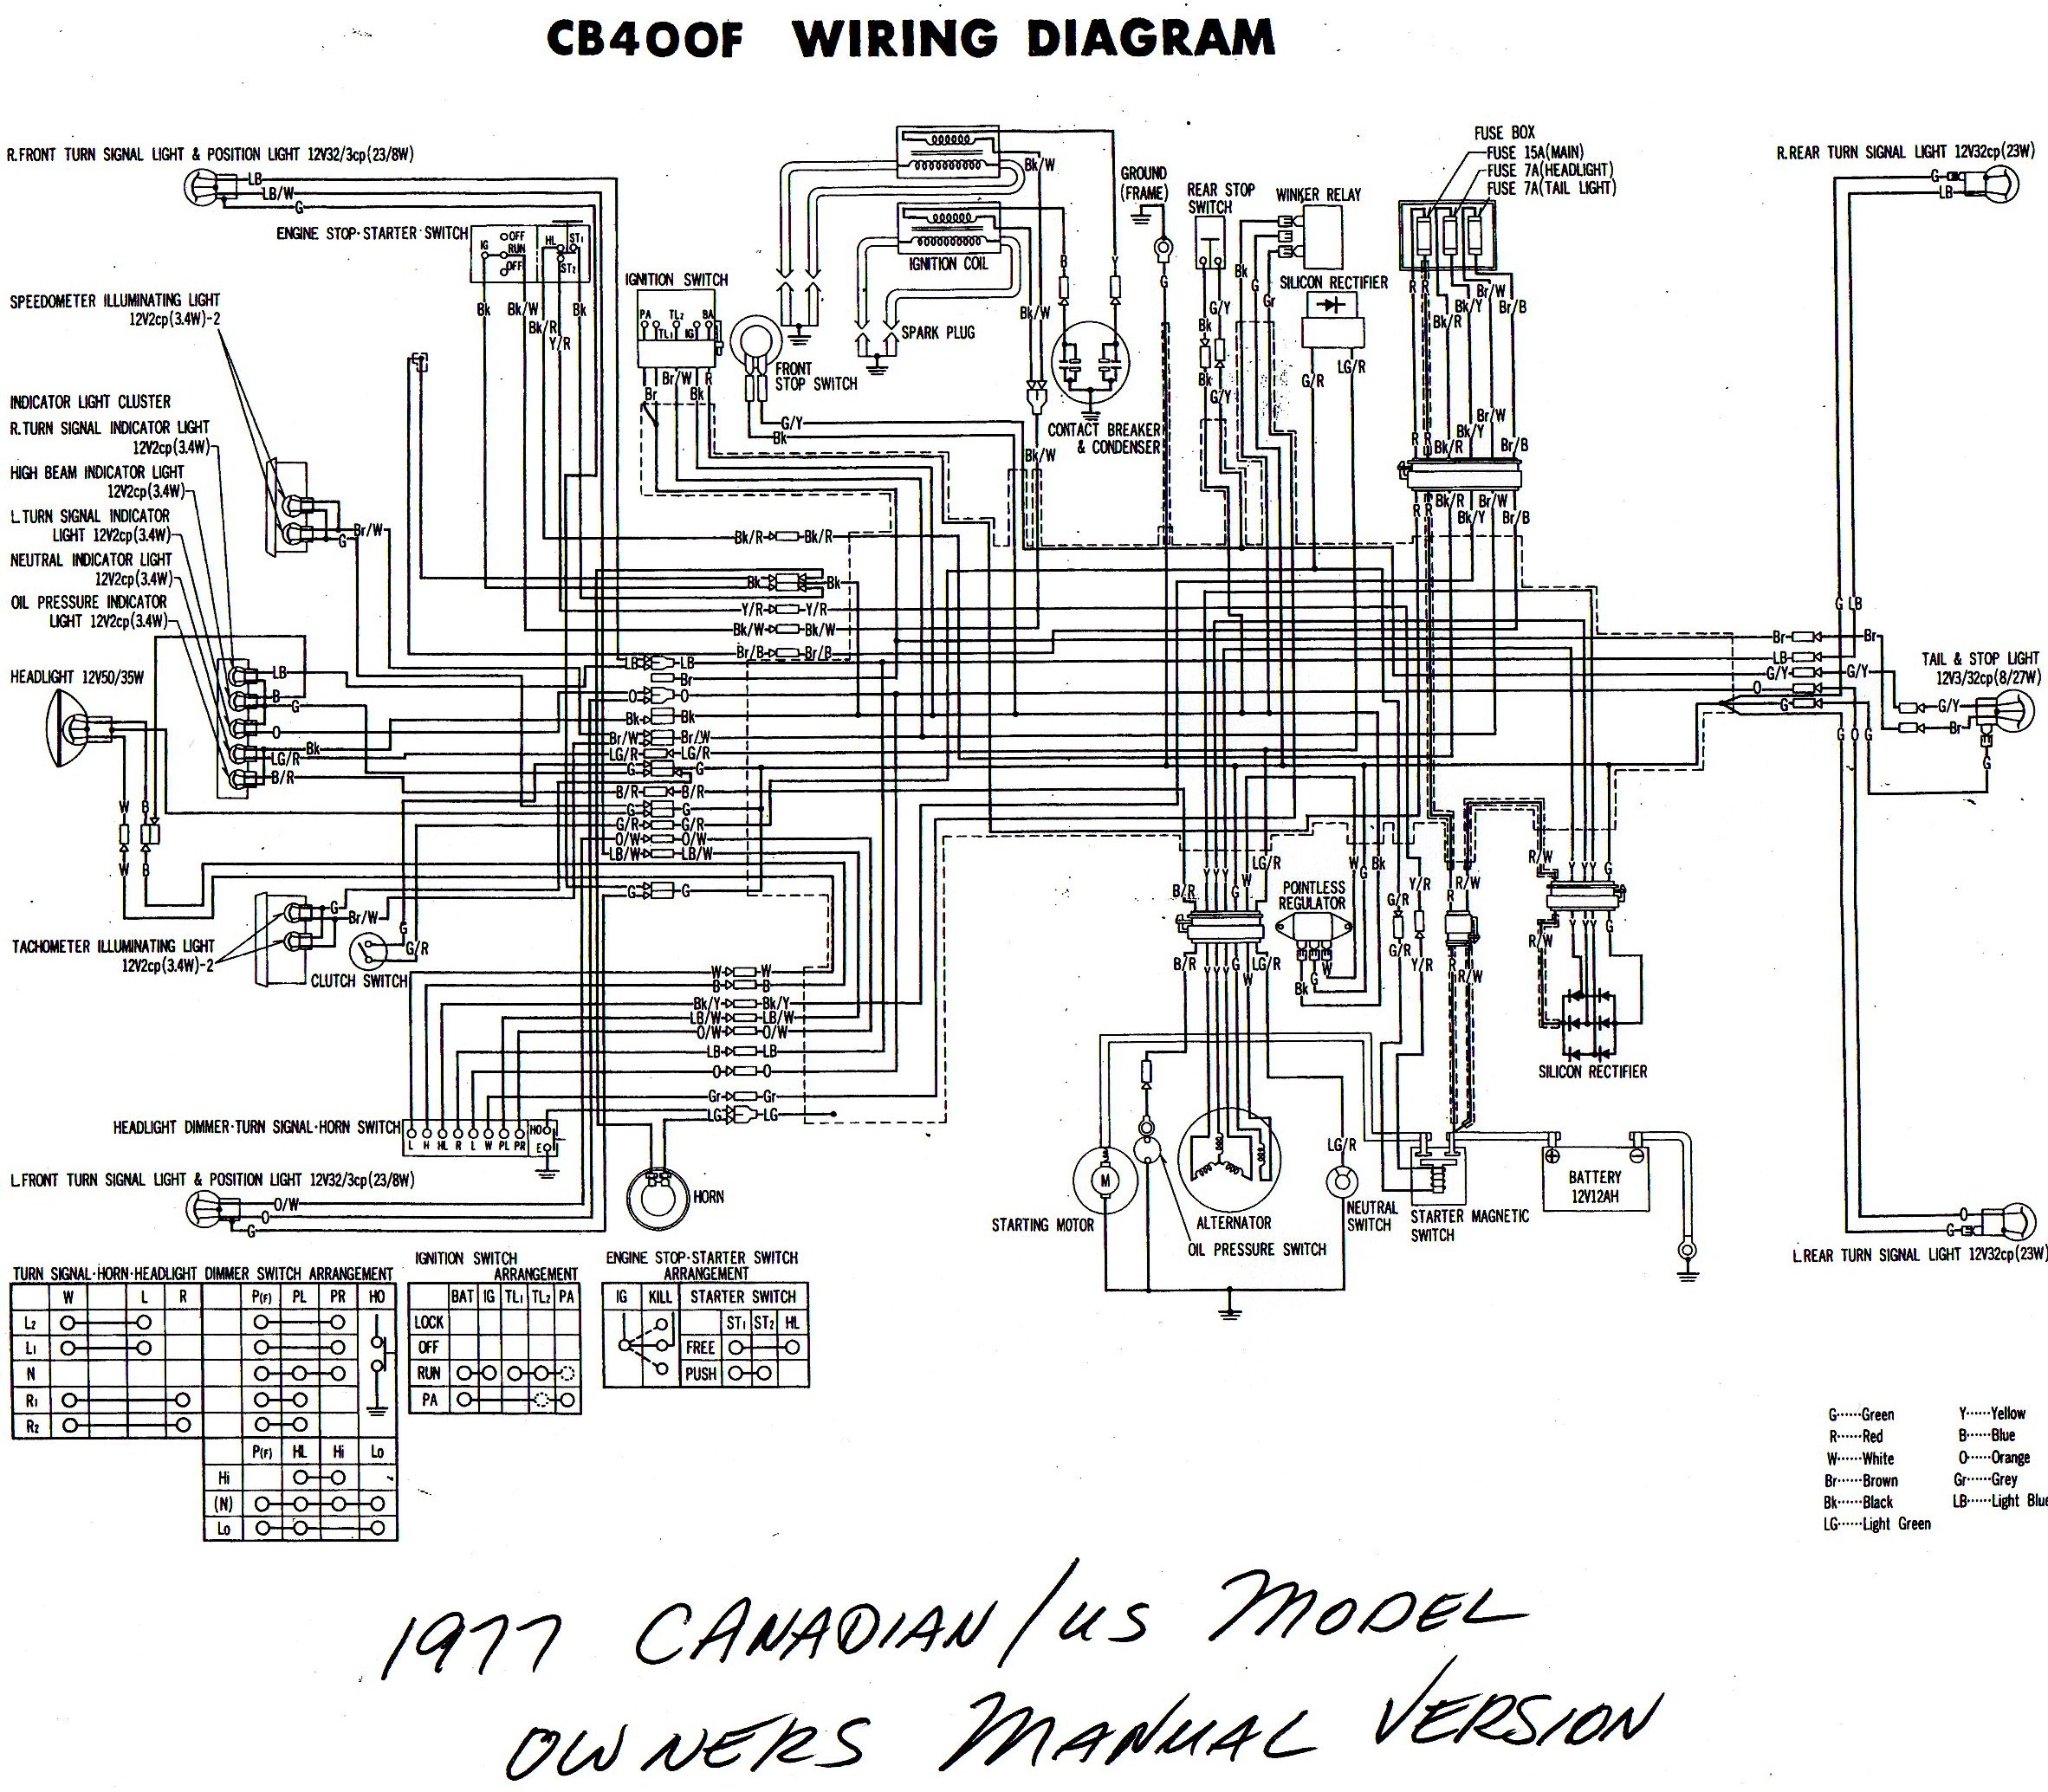 cb400f rh manuals sohc4 net Light Switch Wiring Diagram Residential Electrical Wiring Diagrams